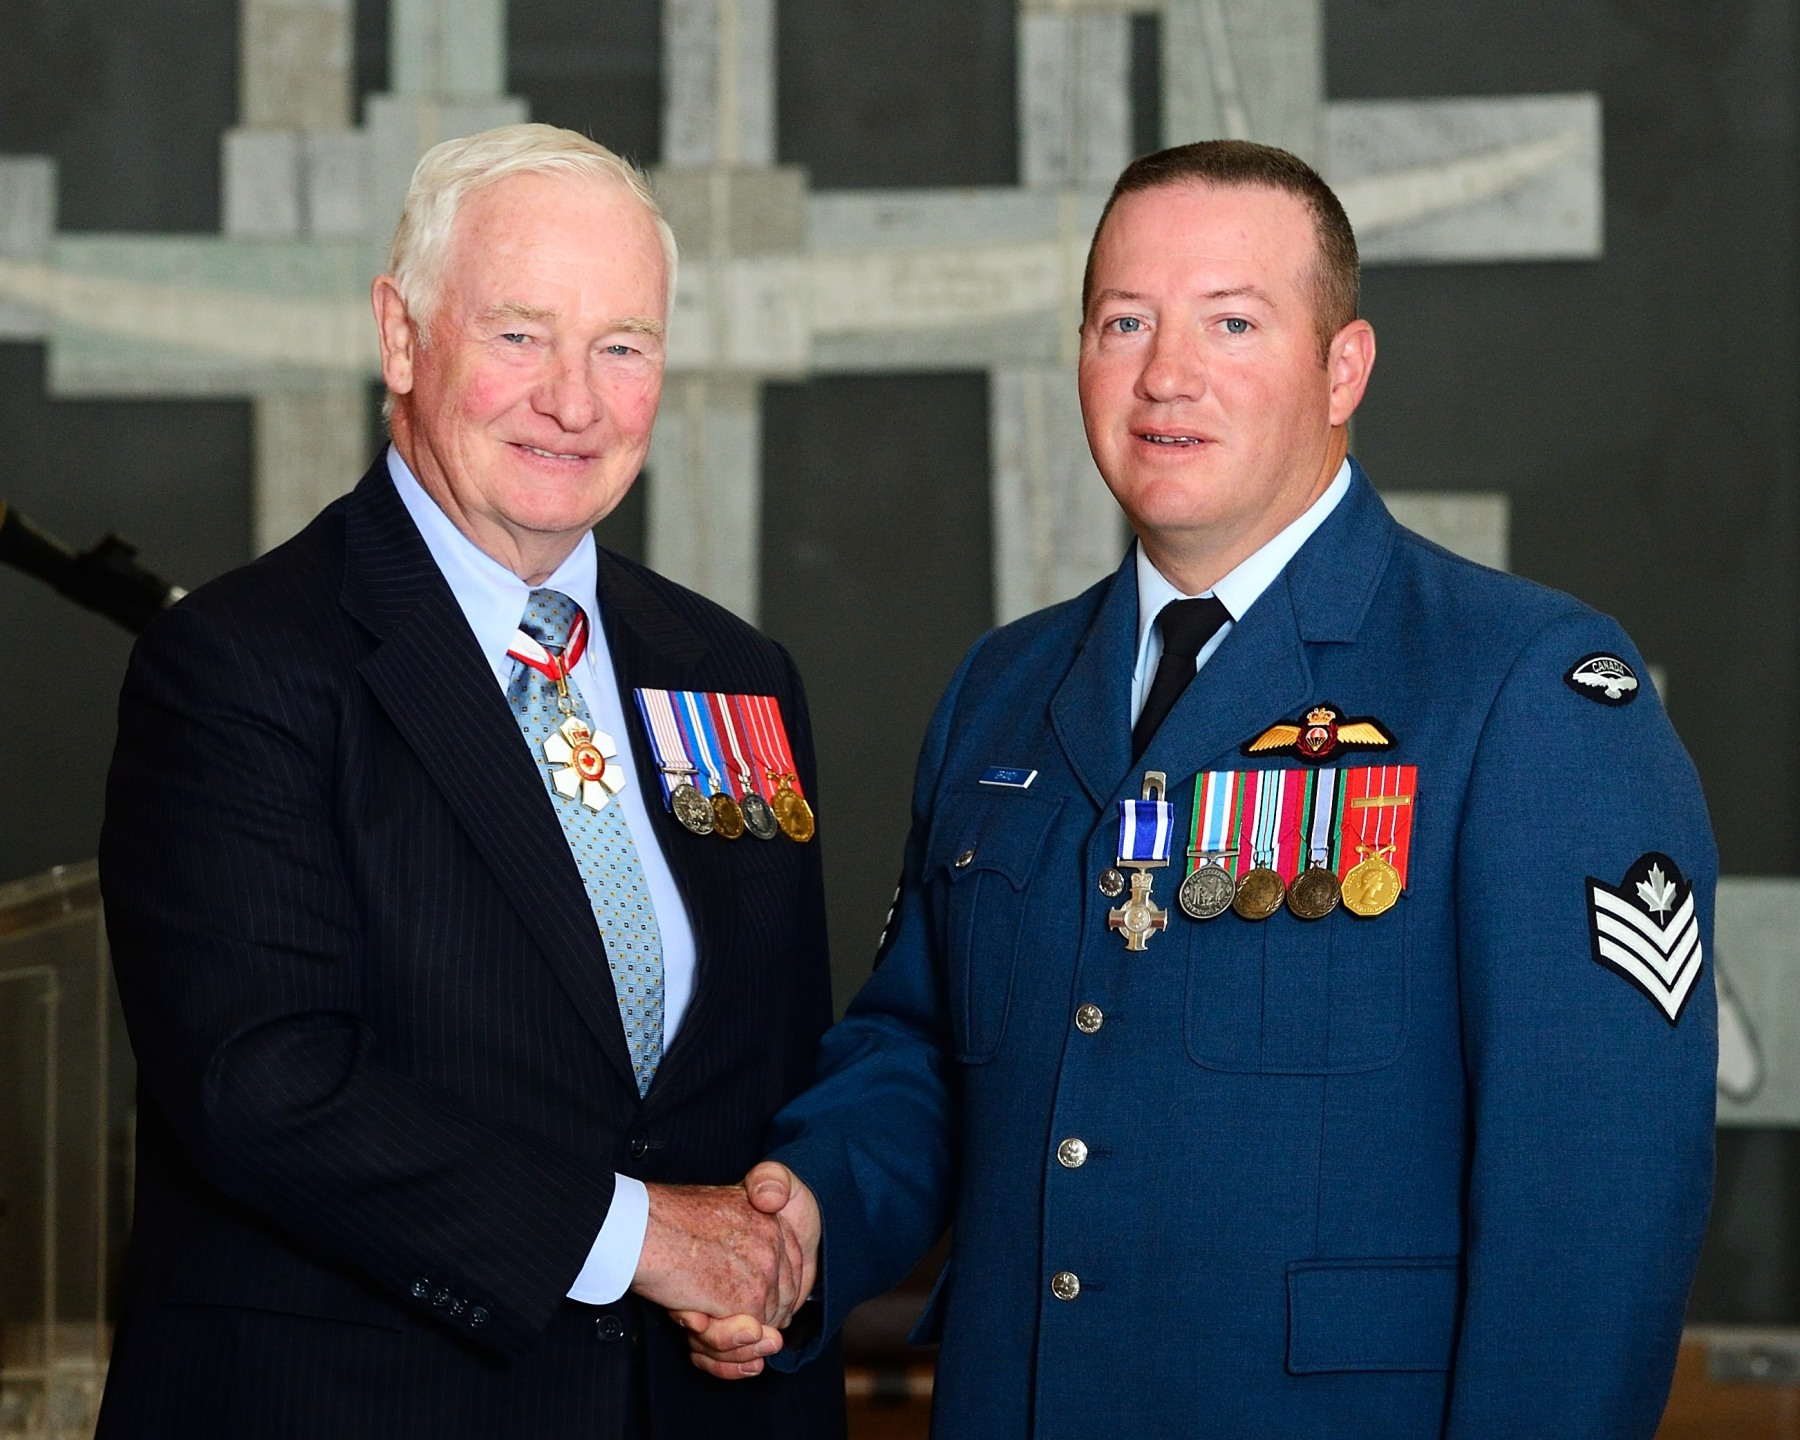 The Governor General presented the Meritorious Service Cross (Military Division) to Sergeant Terrence Gregory Grandy, M.S.C., C.D. On September 20, 2011, search and rescue technician Sergeant Grandy successfully evacuated three Belgian sailors from a damaged vessel during a severe storm in the Atlantic Ocean. Lowered from the Rescue 908 helicopter onto the vessel, Sergeant Grady was able to keep the rescue basket under control during the hoisting operation despite the gusting winds and high sea swells. Sergeant Grandy's tenacity as well as his professionalism under difficult environmental conditions brought great credit to himself, to the Royal Canadian Air Force and to Canada